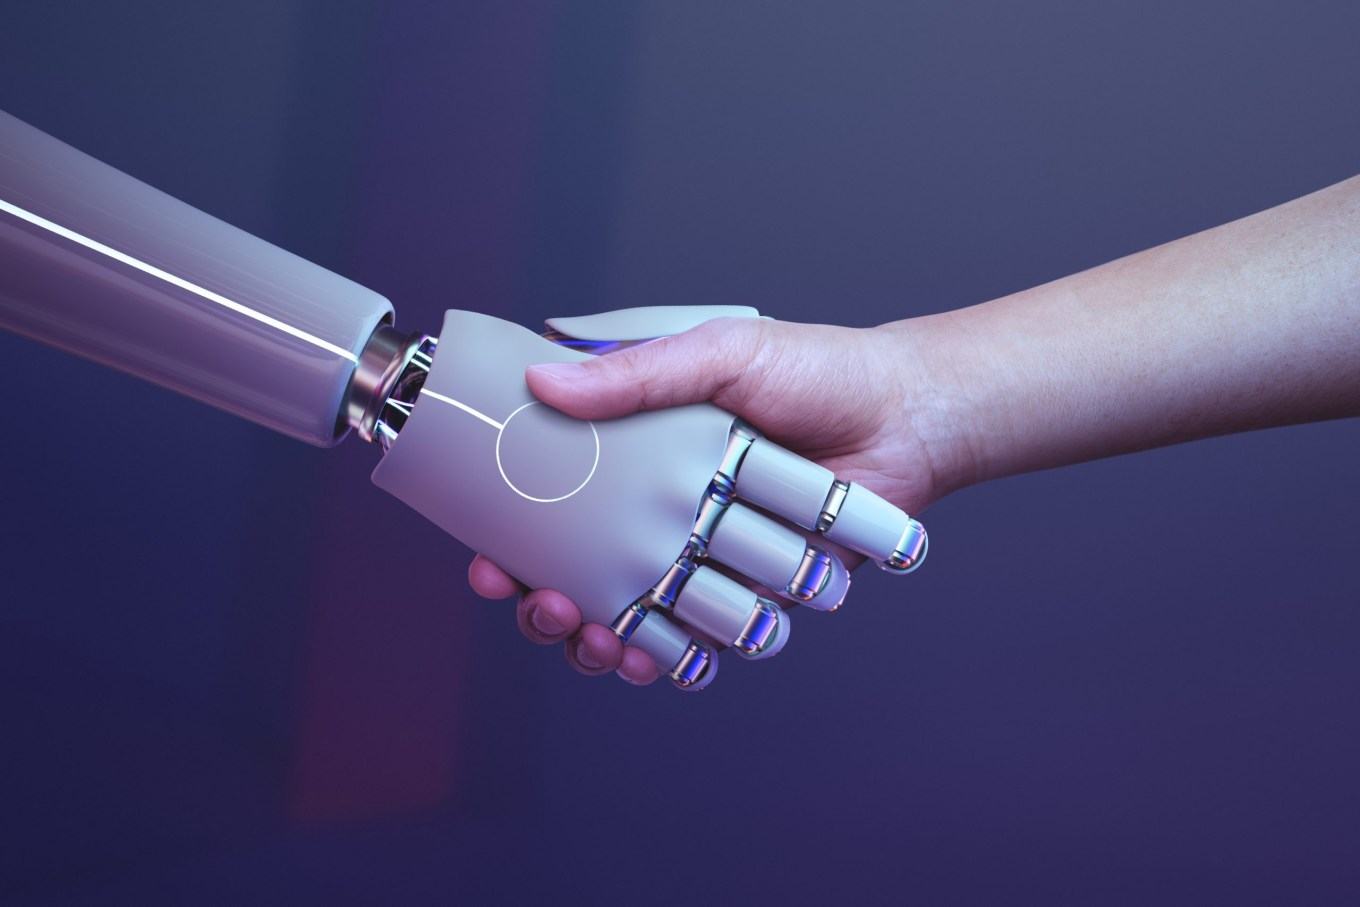 Algorithms or Free Will? Confronting the Future of Artificial Intelligence